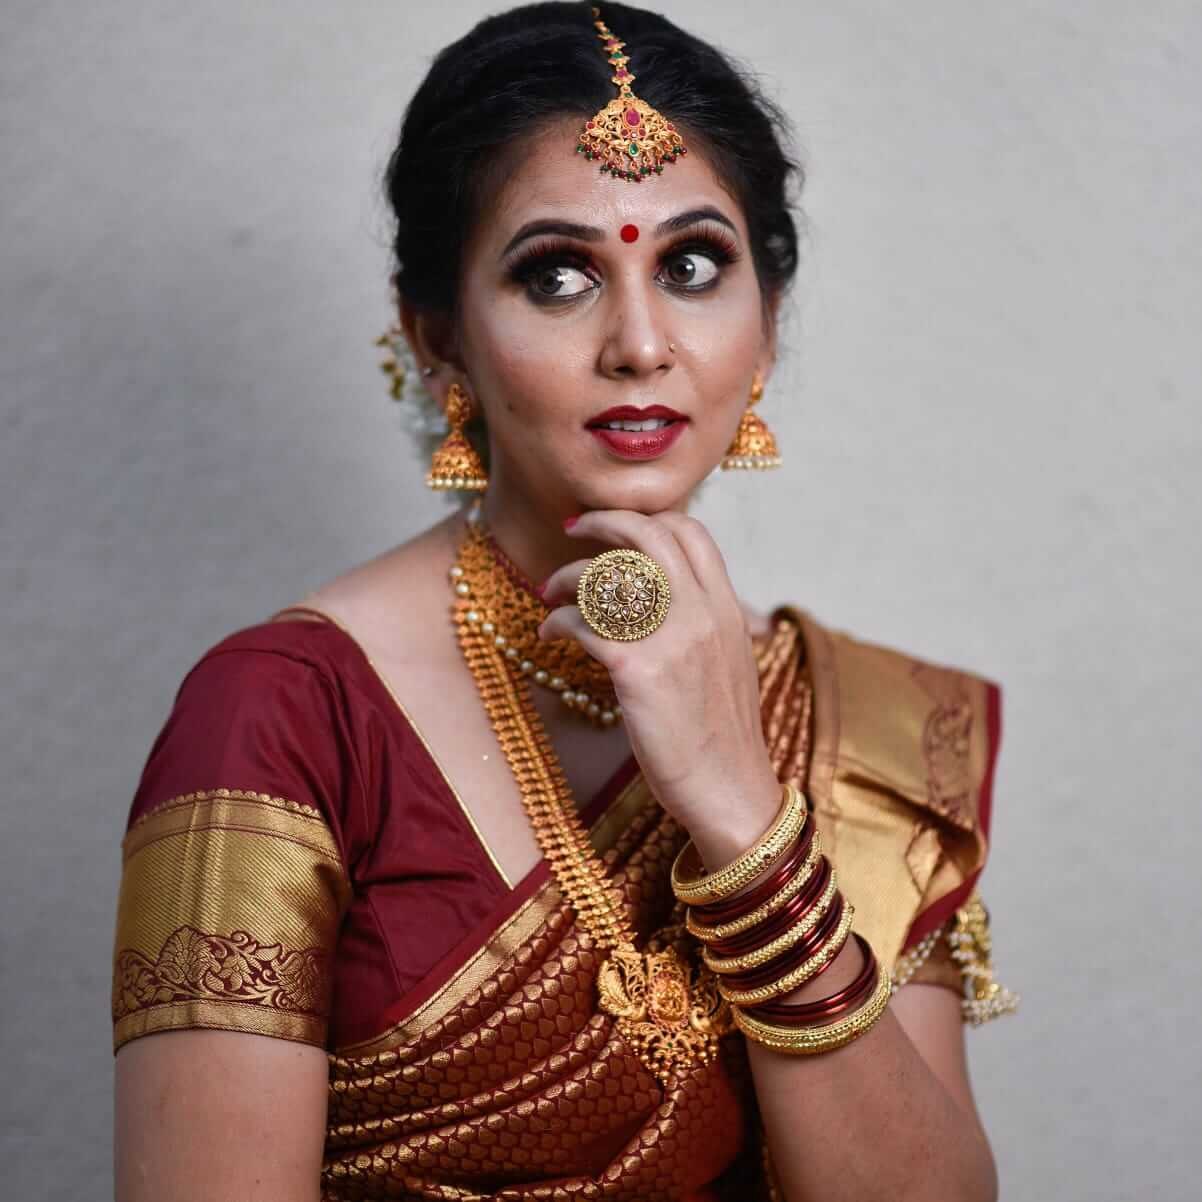 snehal jadhav in saree